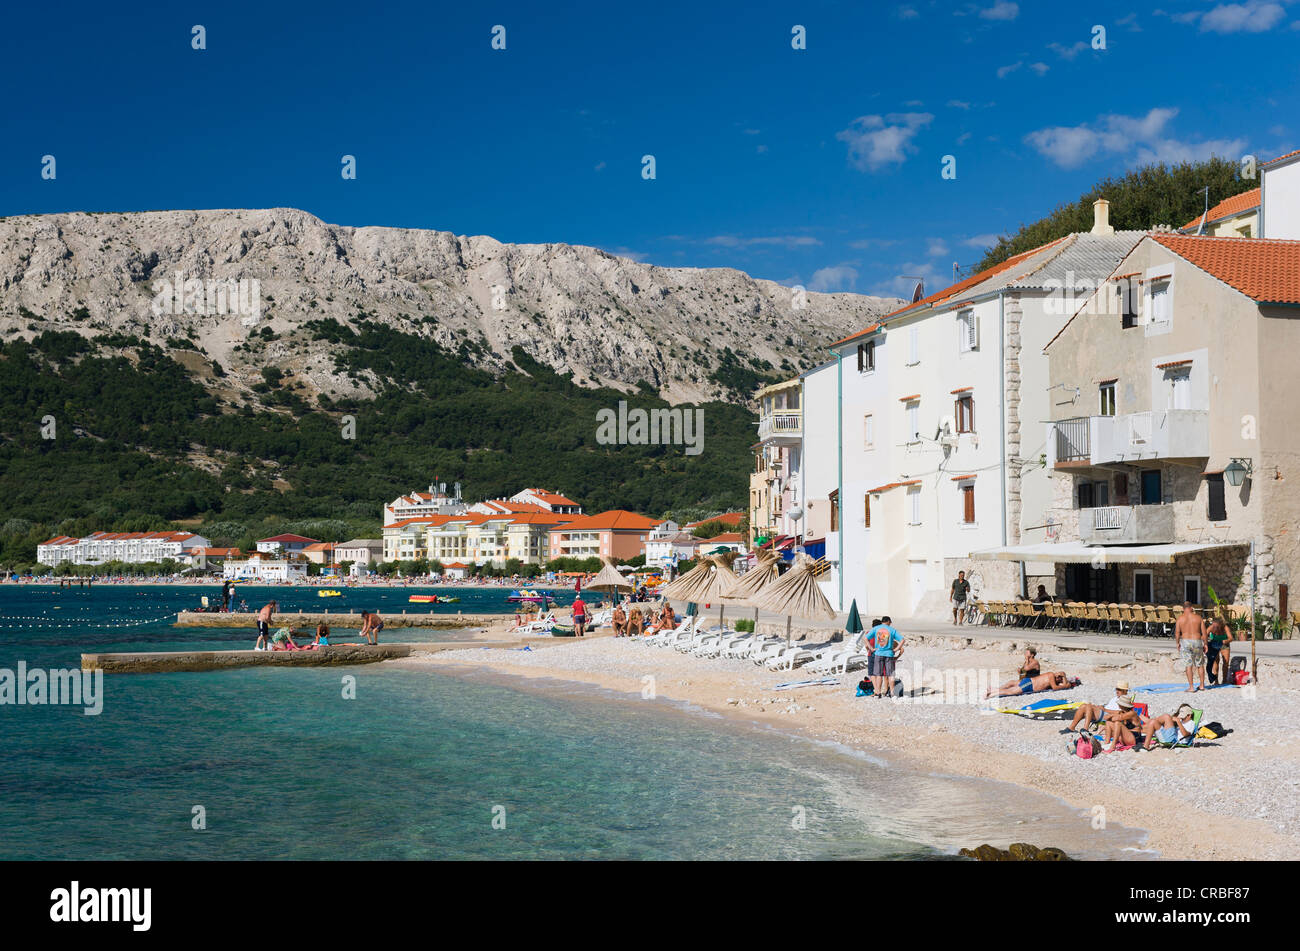 Beach of Baska, Krk island, Kvarner Gulf, Croatia, Europe - Stock Image